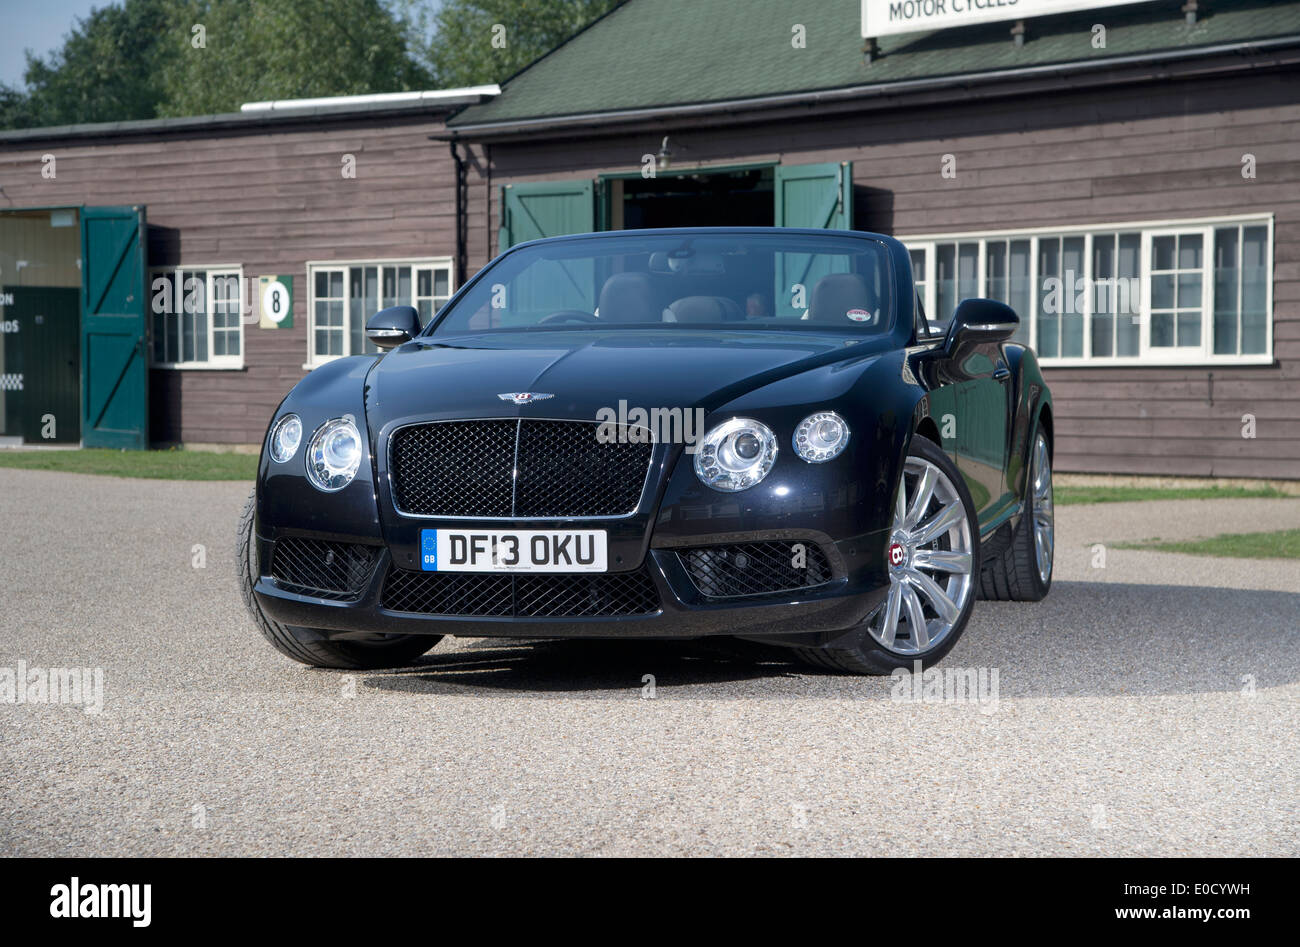 2013 Bentley GTC luxury British convertible car - Stock Image